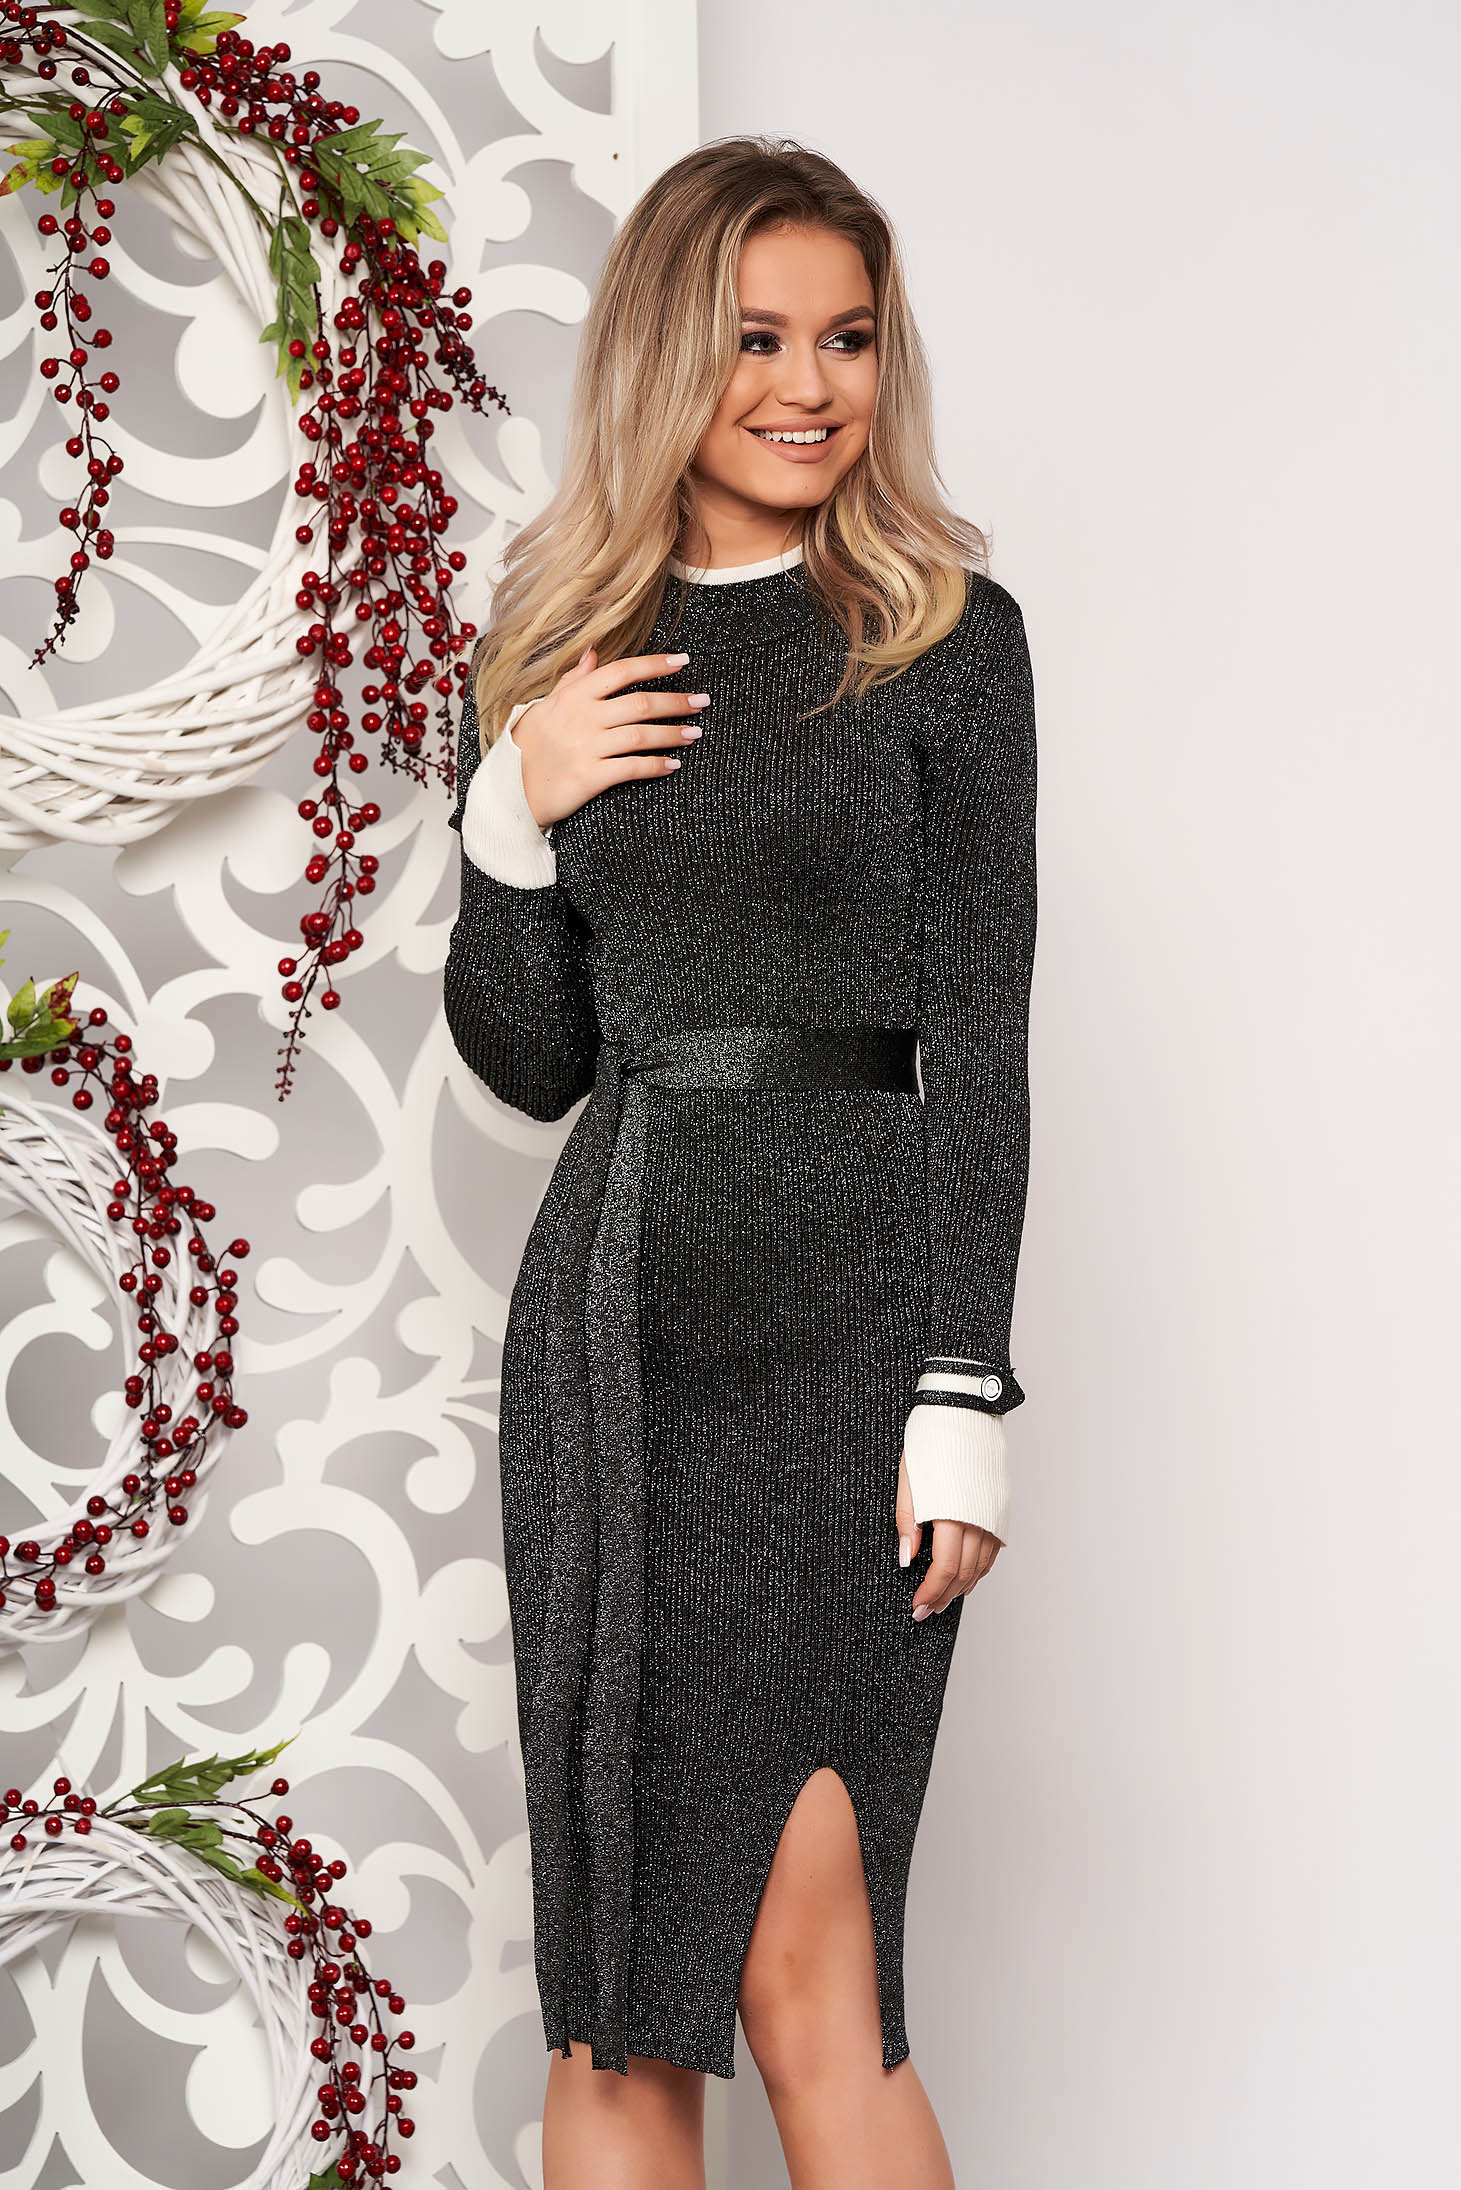 Darkblue dress elegant midi pencil knitted from striped fabric with turtle neck frontal slit